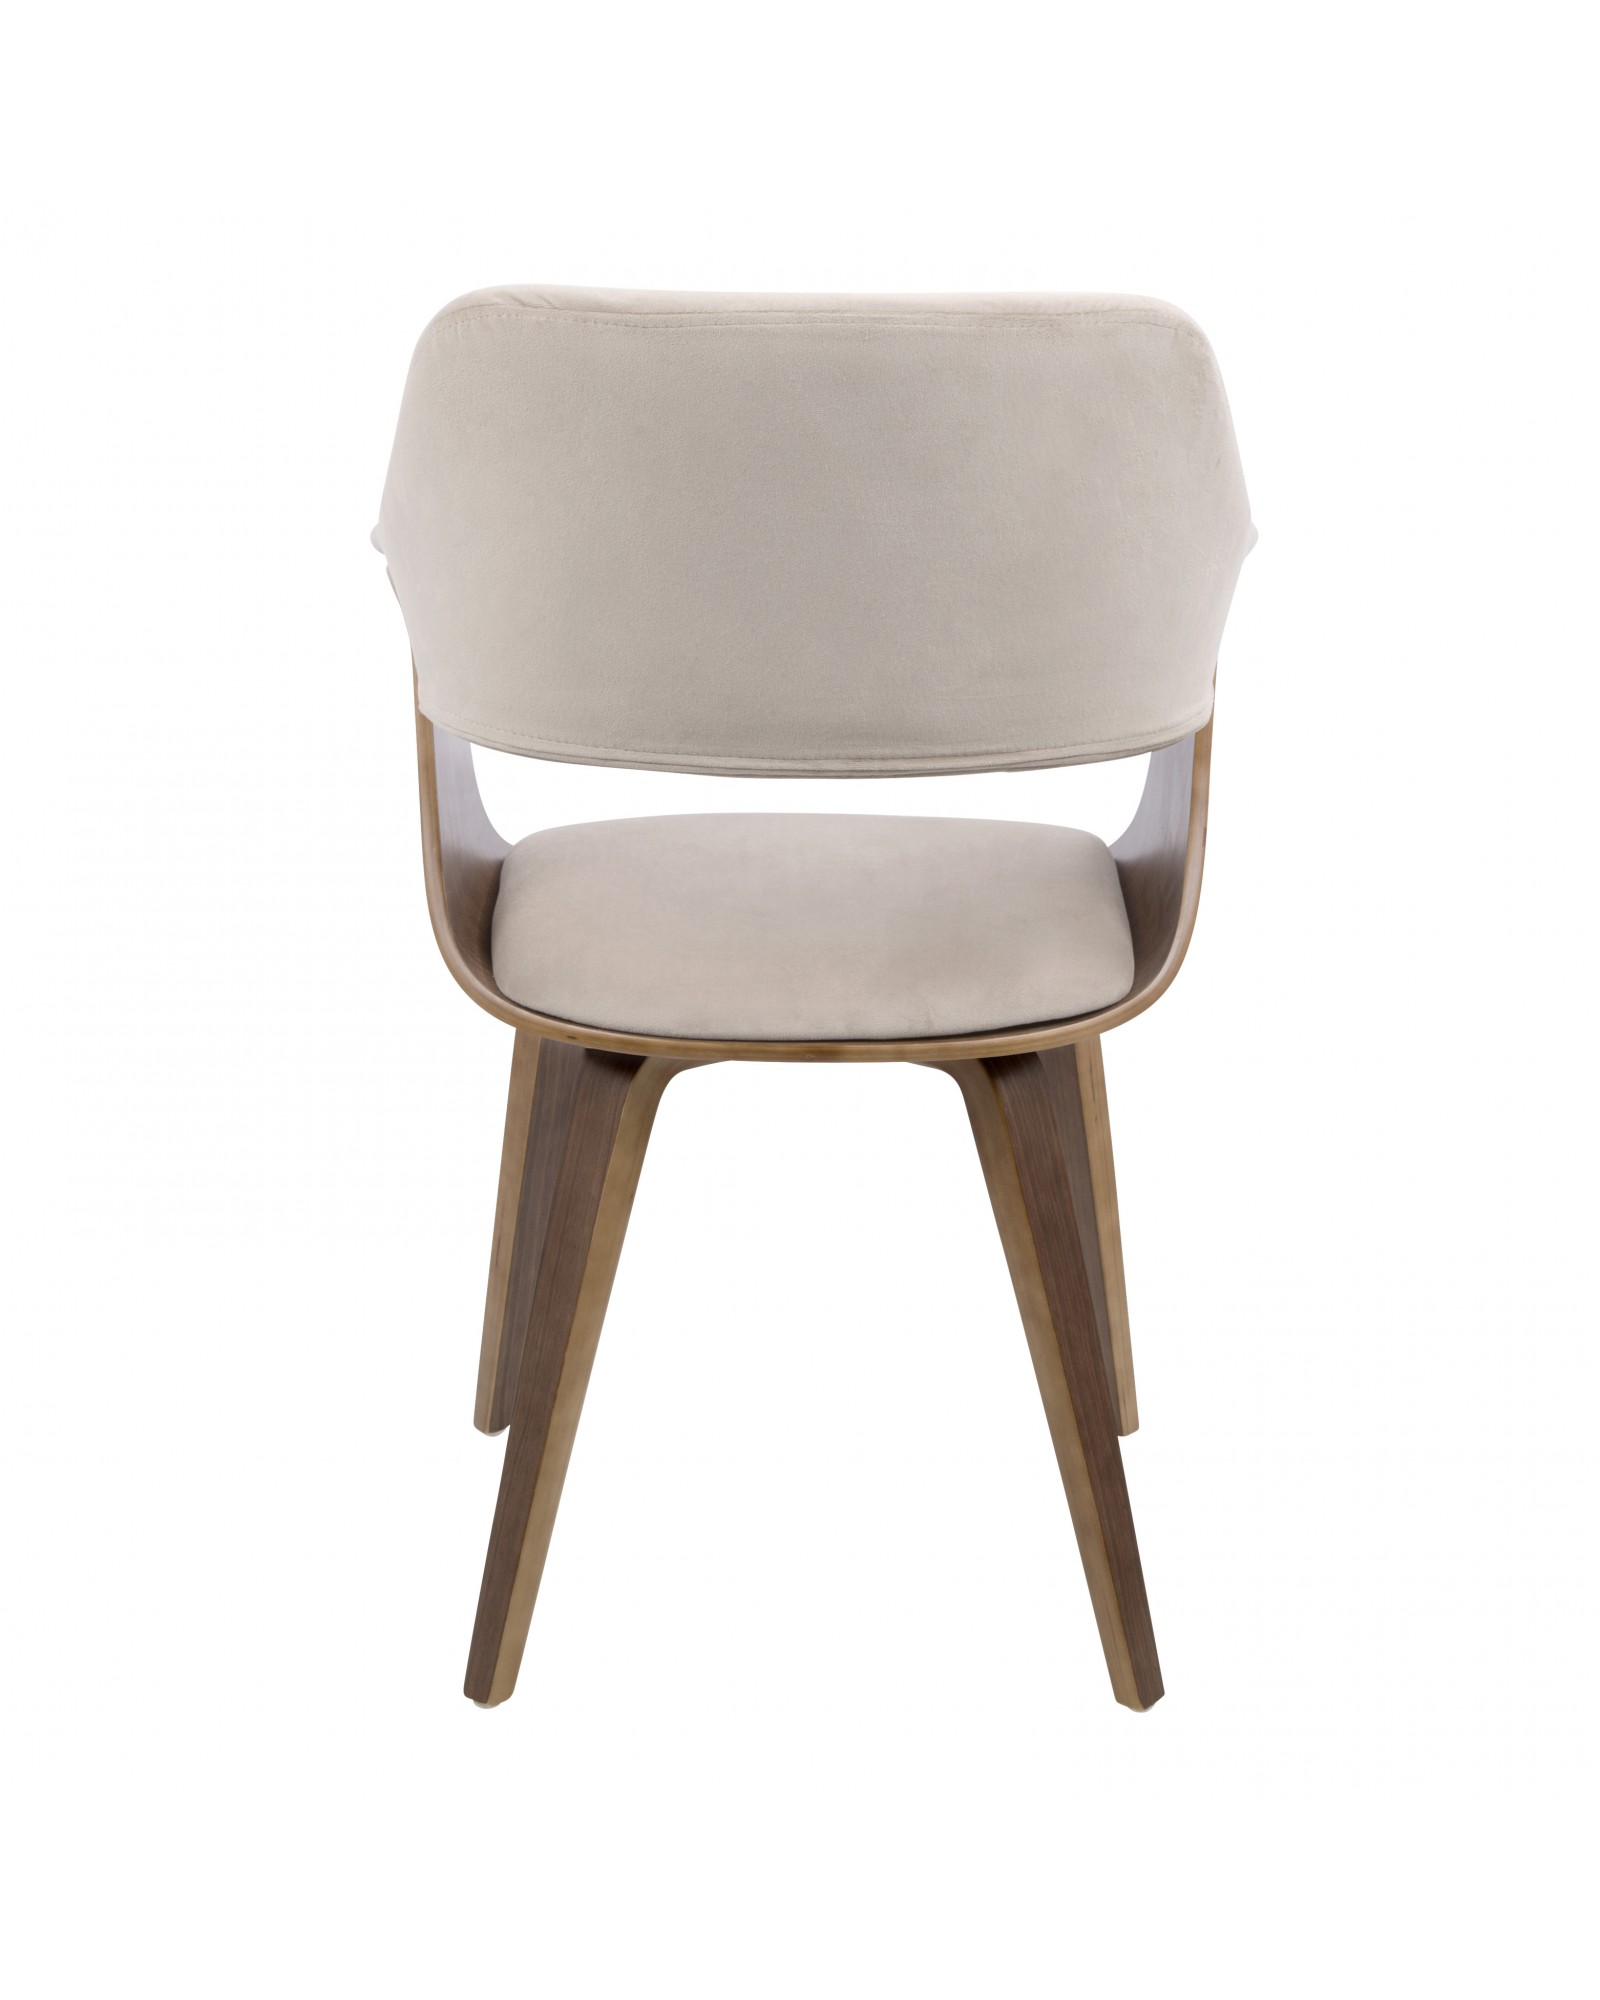 Lucci Mid-Century Modern Chair in Walnut and Tan Velvet